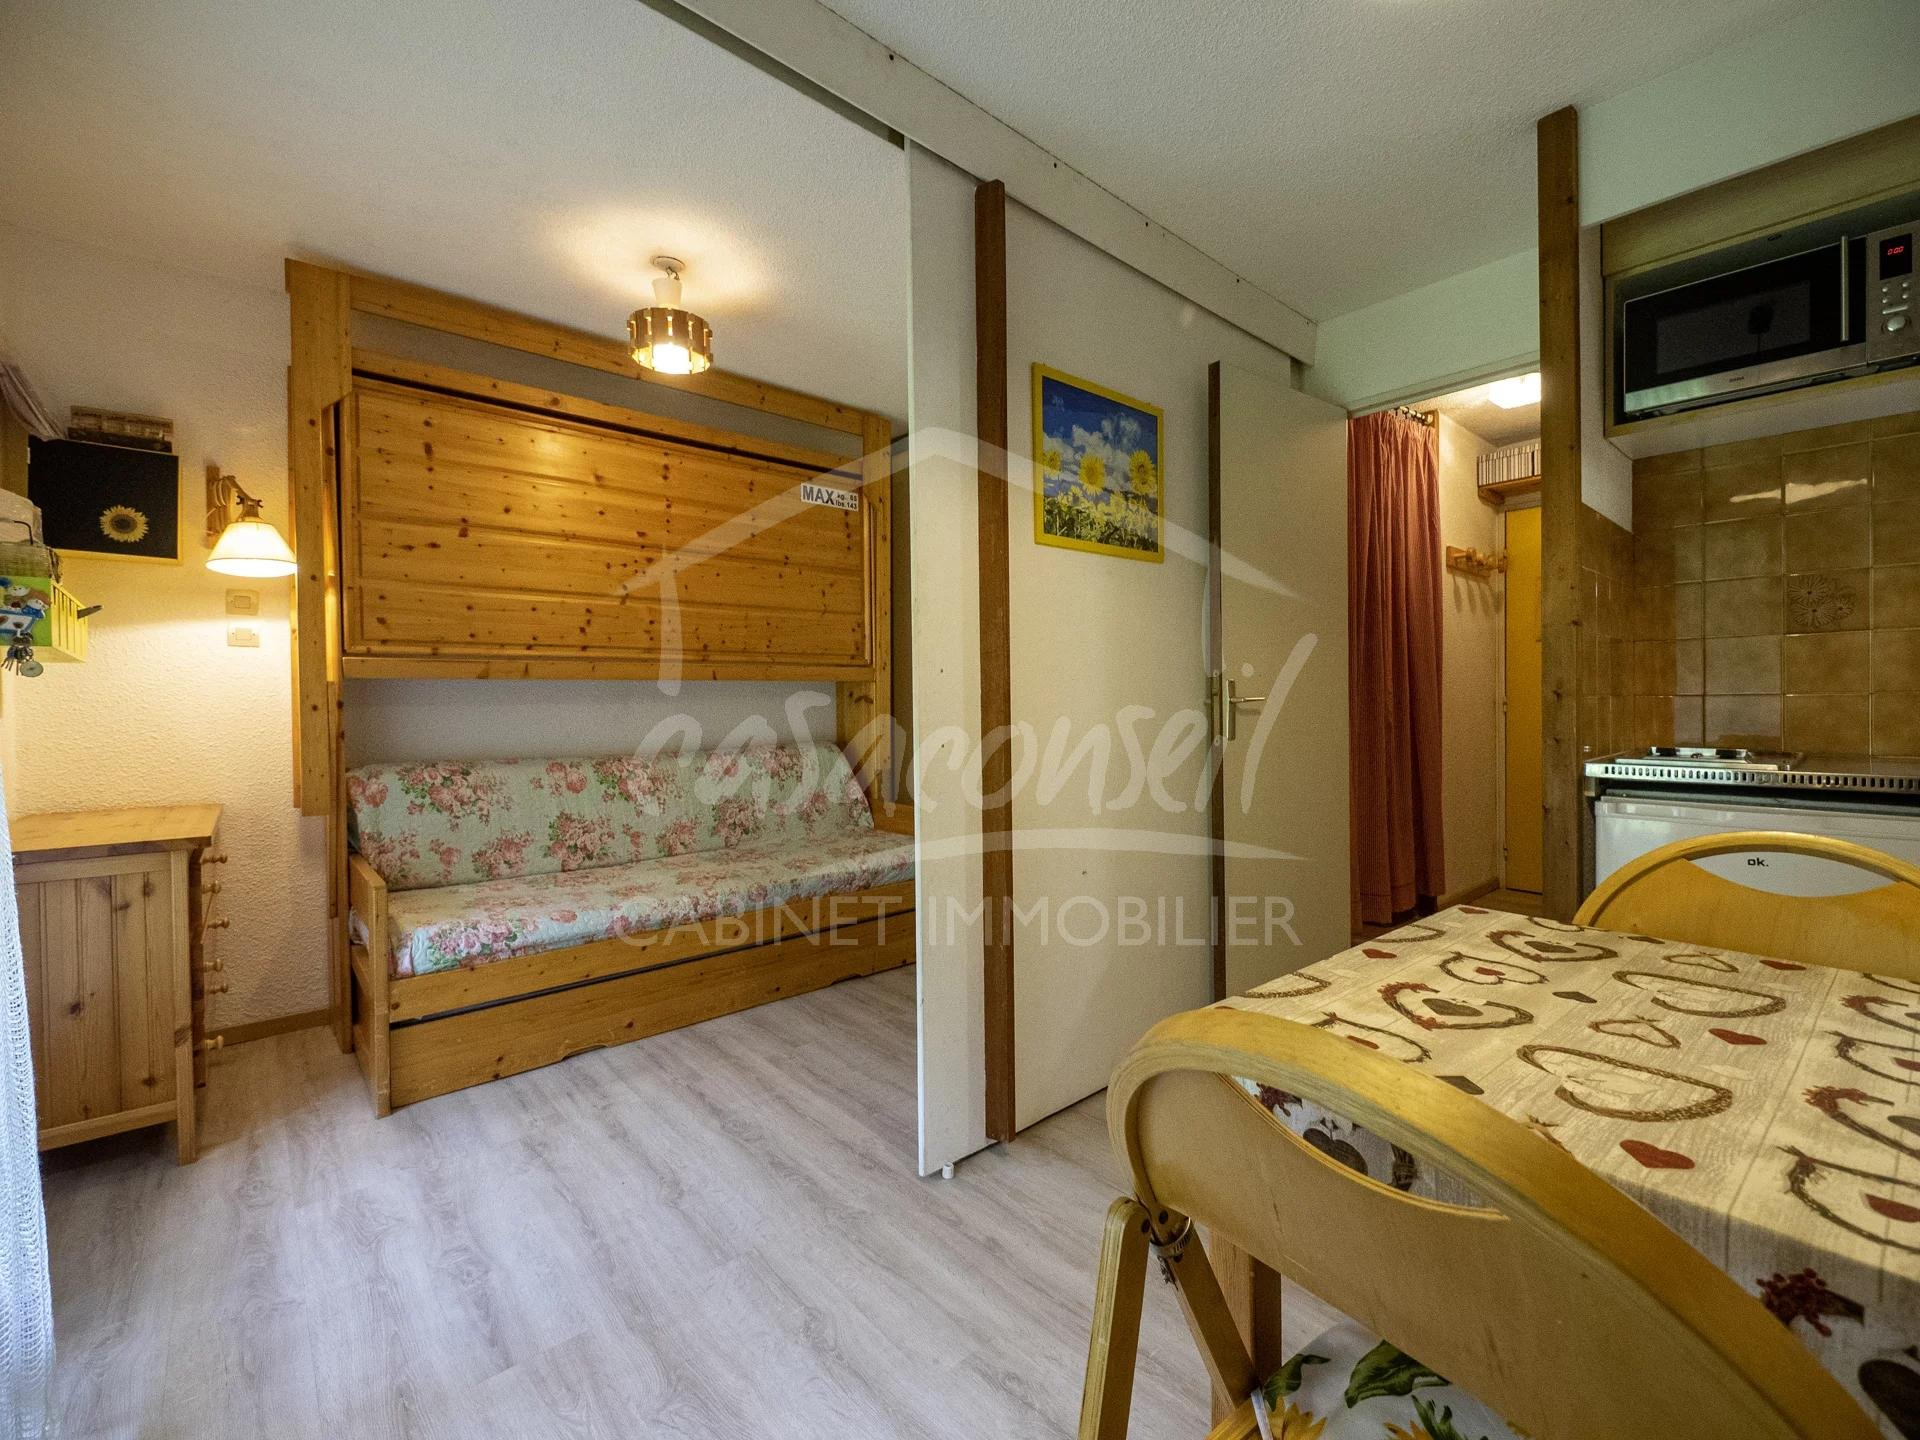 Les Contamines Montjoie- 1 bedroom apartment with terrace